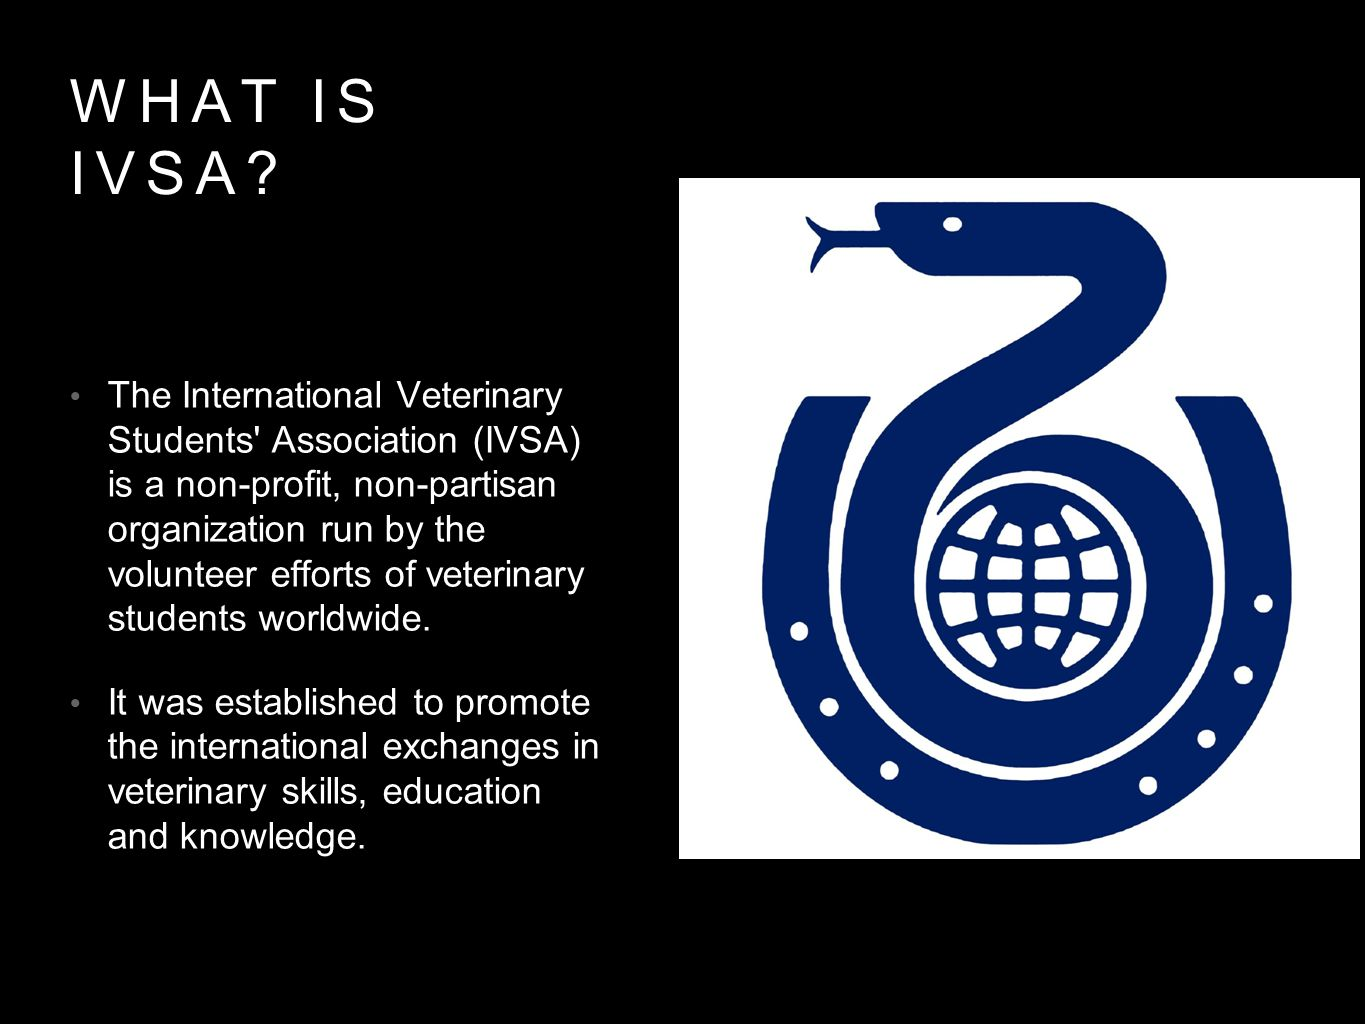 What is IVSA